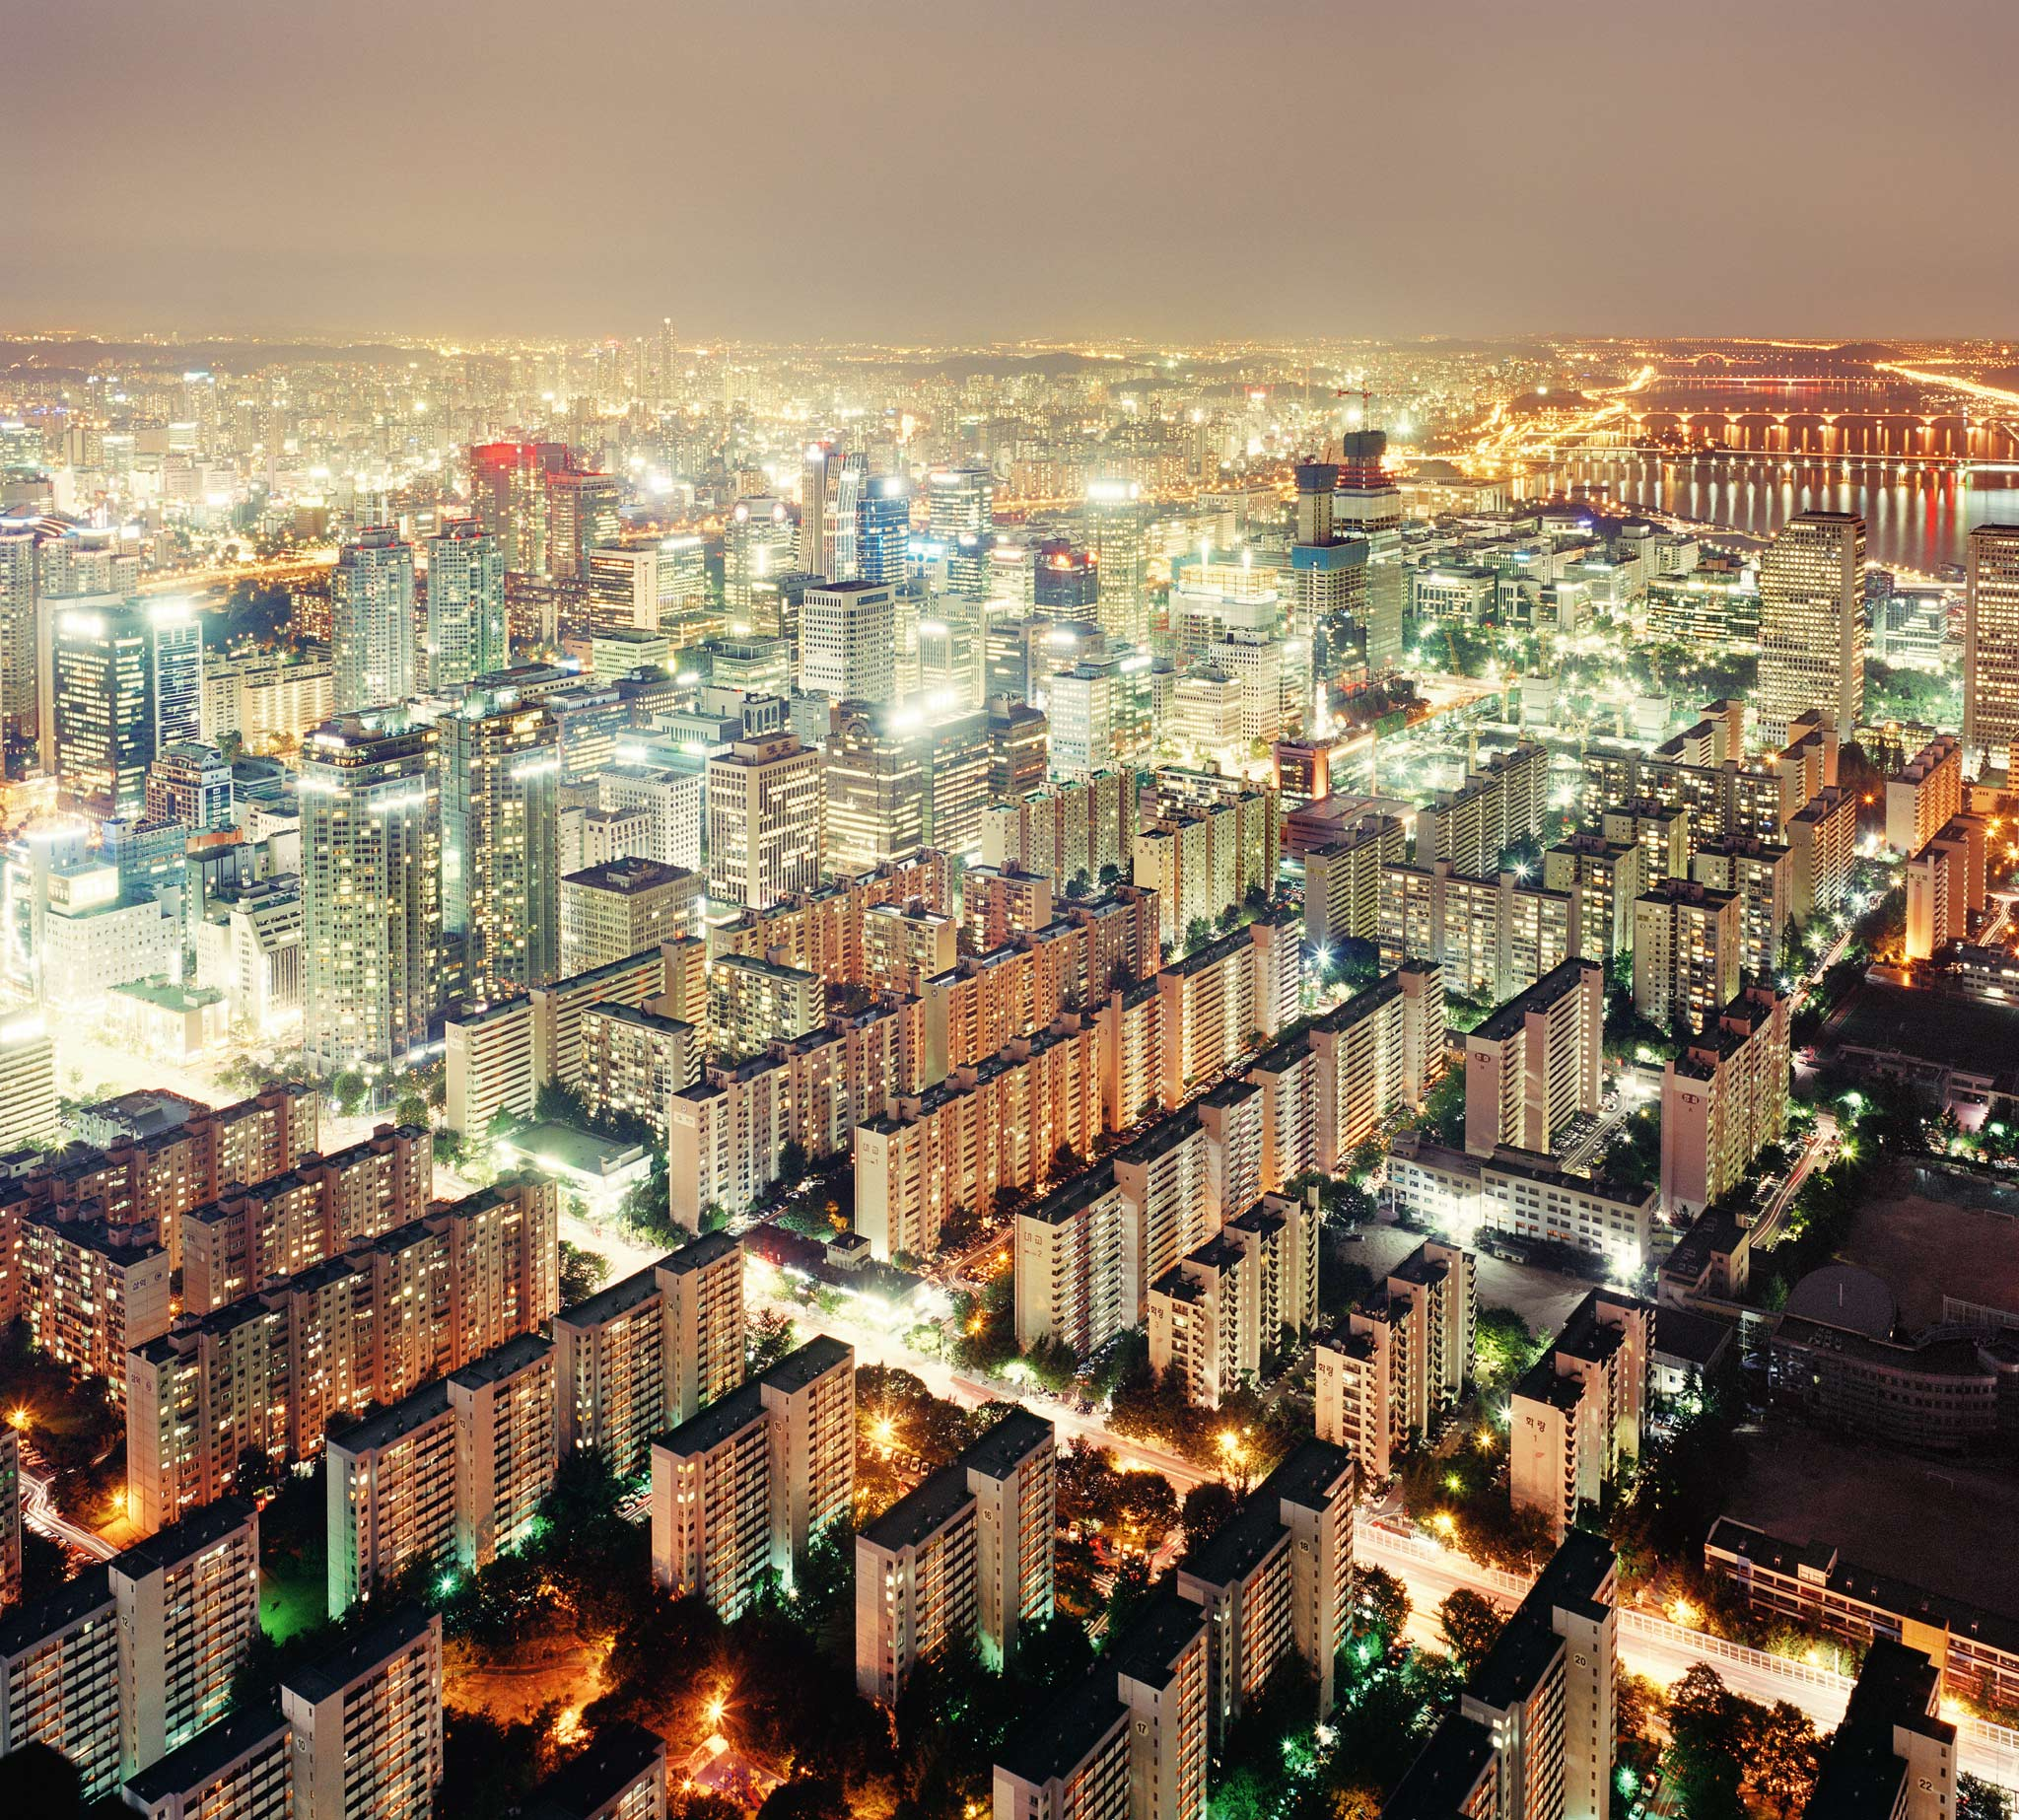 Apartment blocks light up the night sky in Seoul, South Korea.